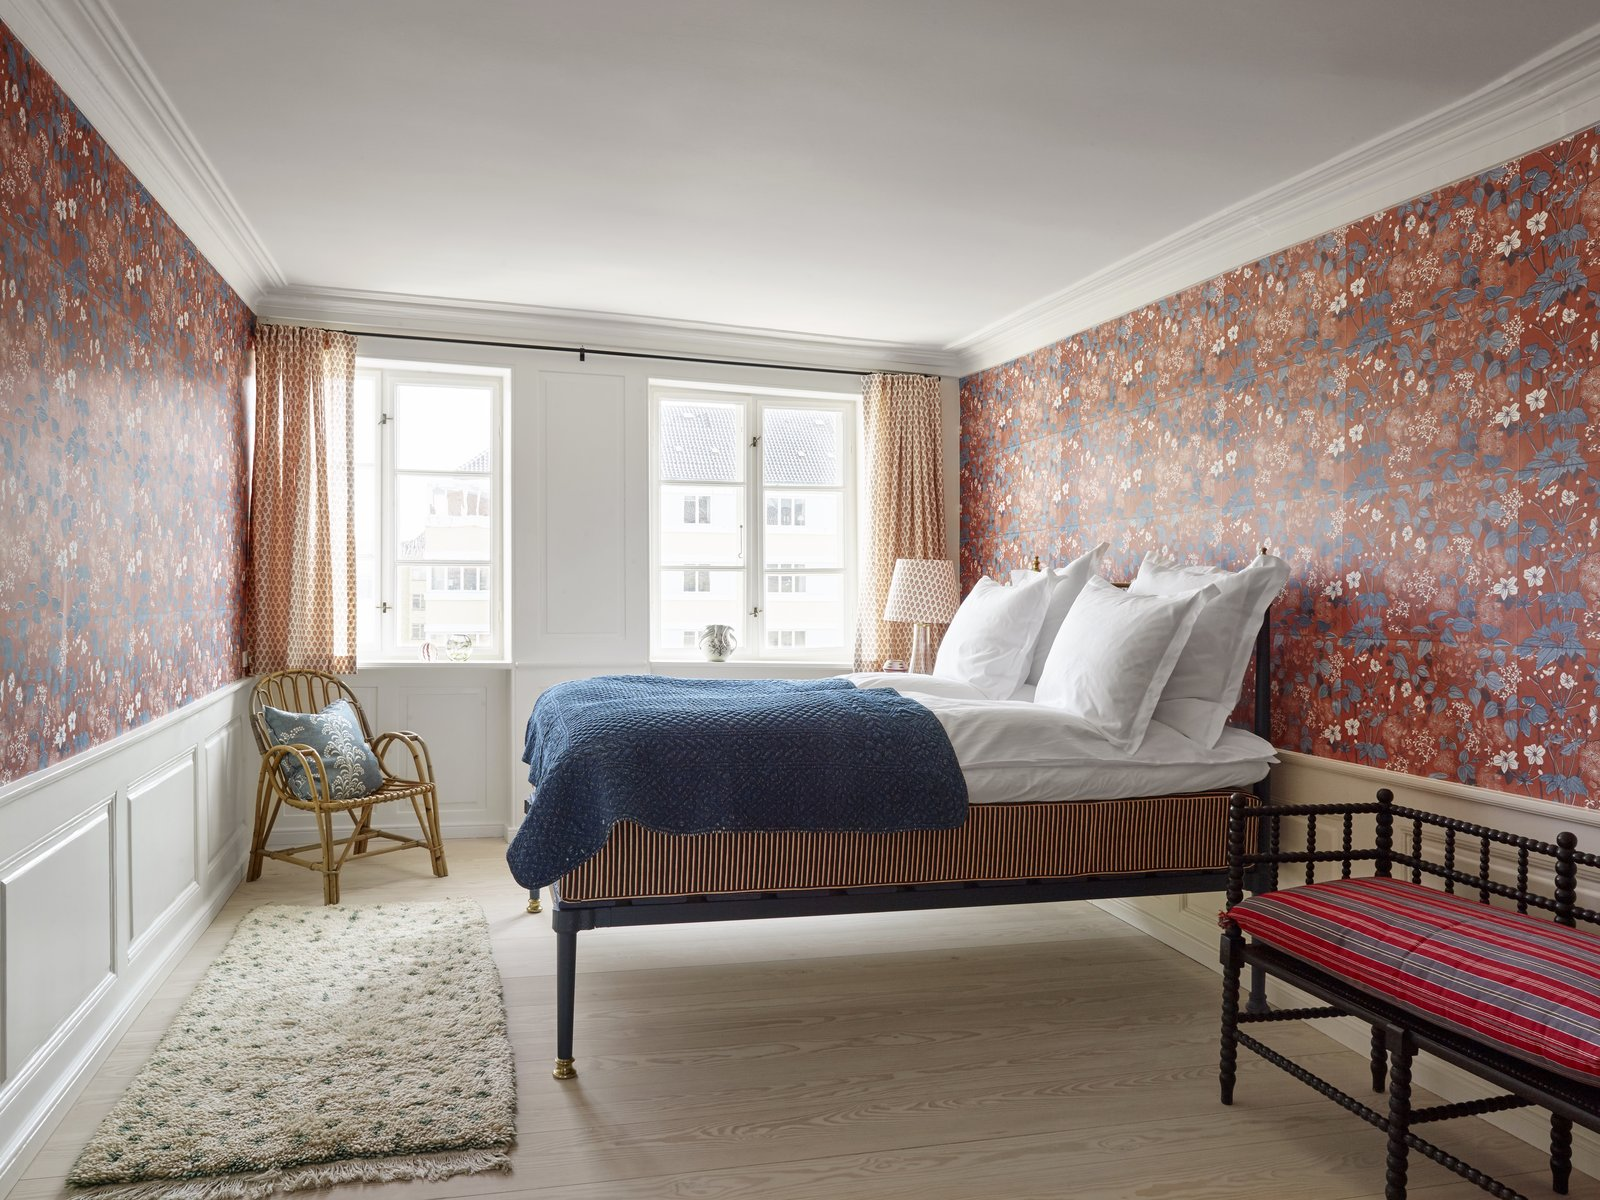 The Apartment by Tina Seidenfaden Busck bedroom